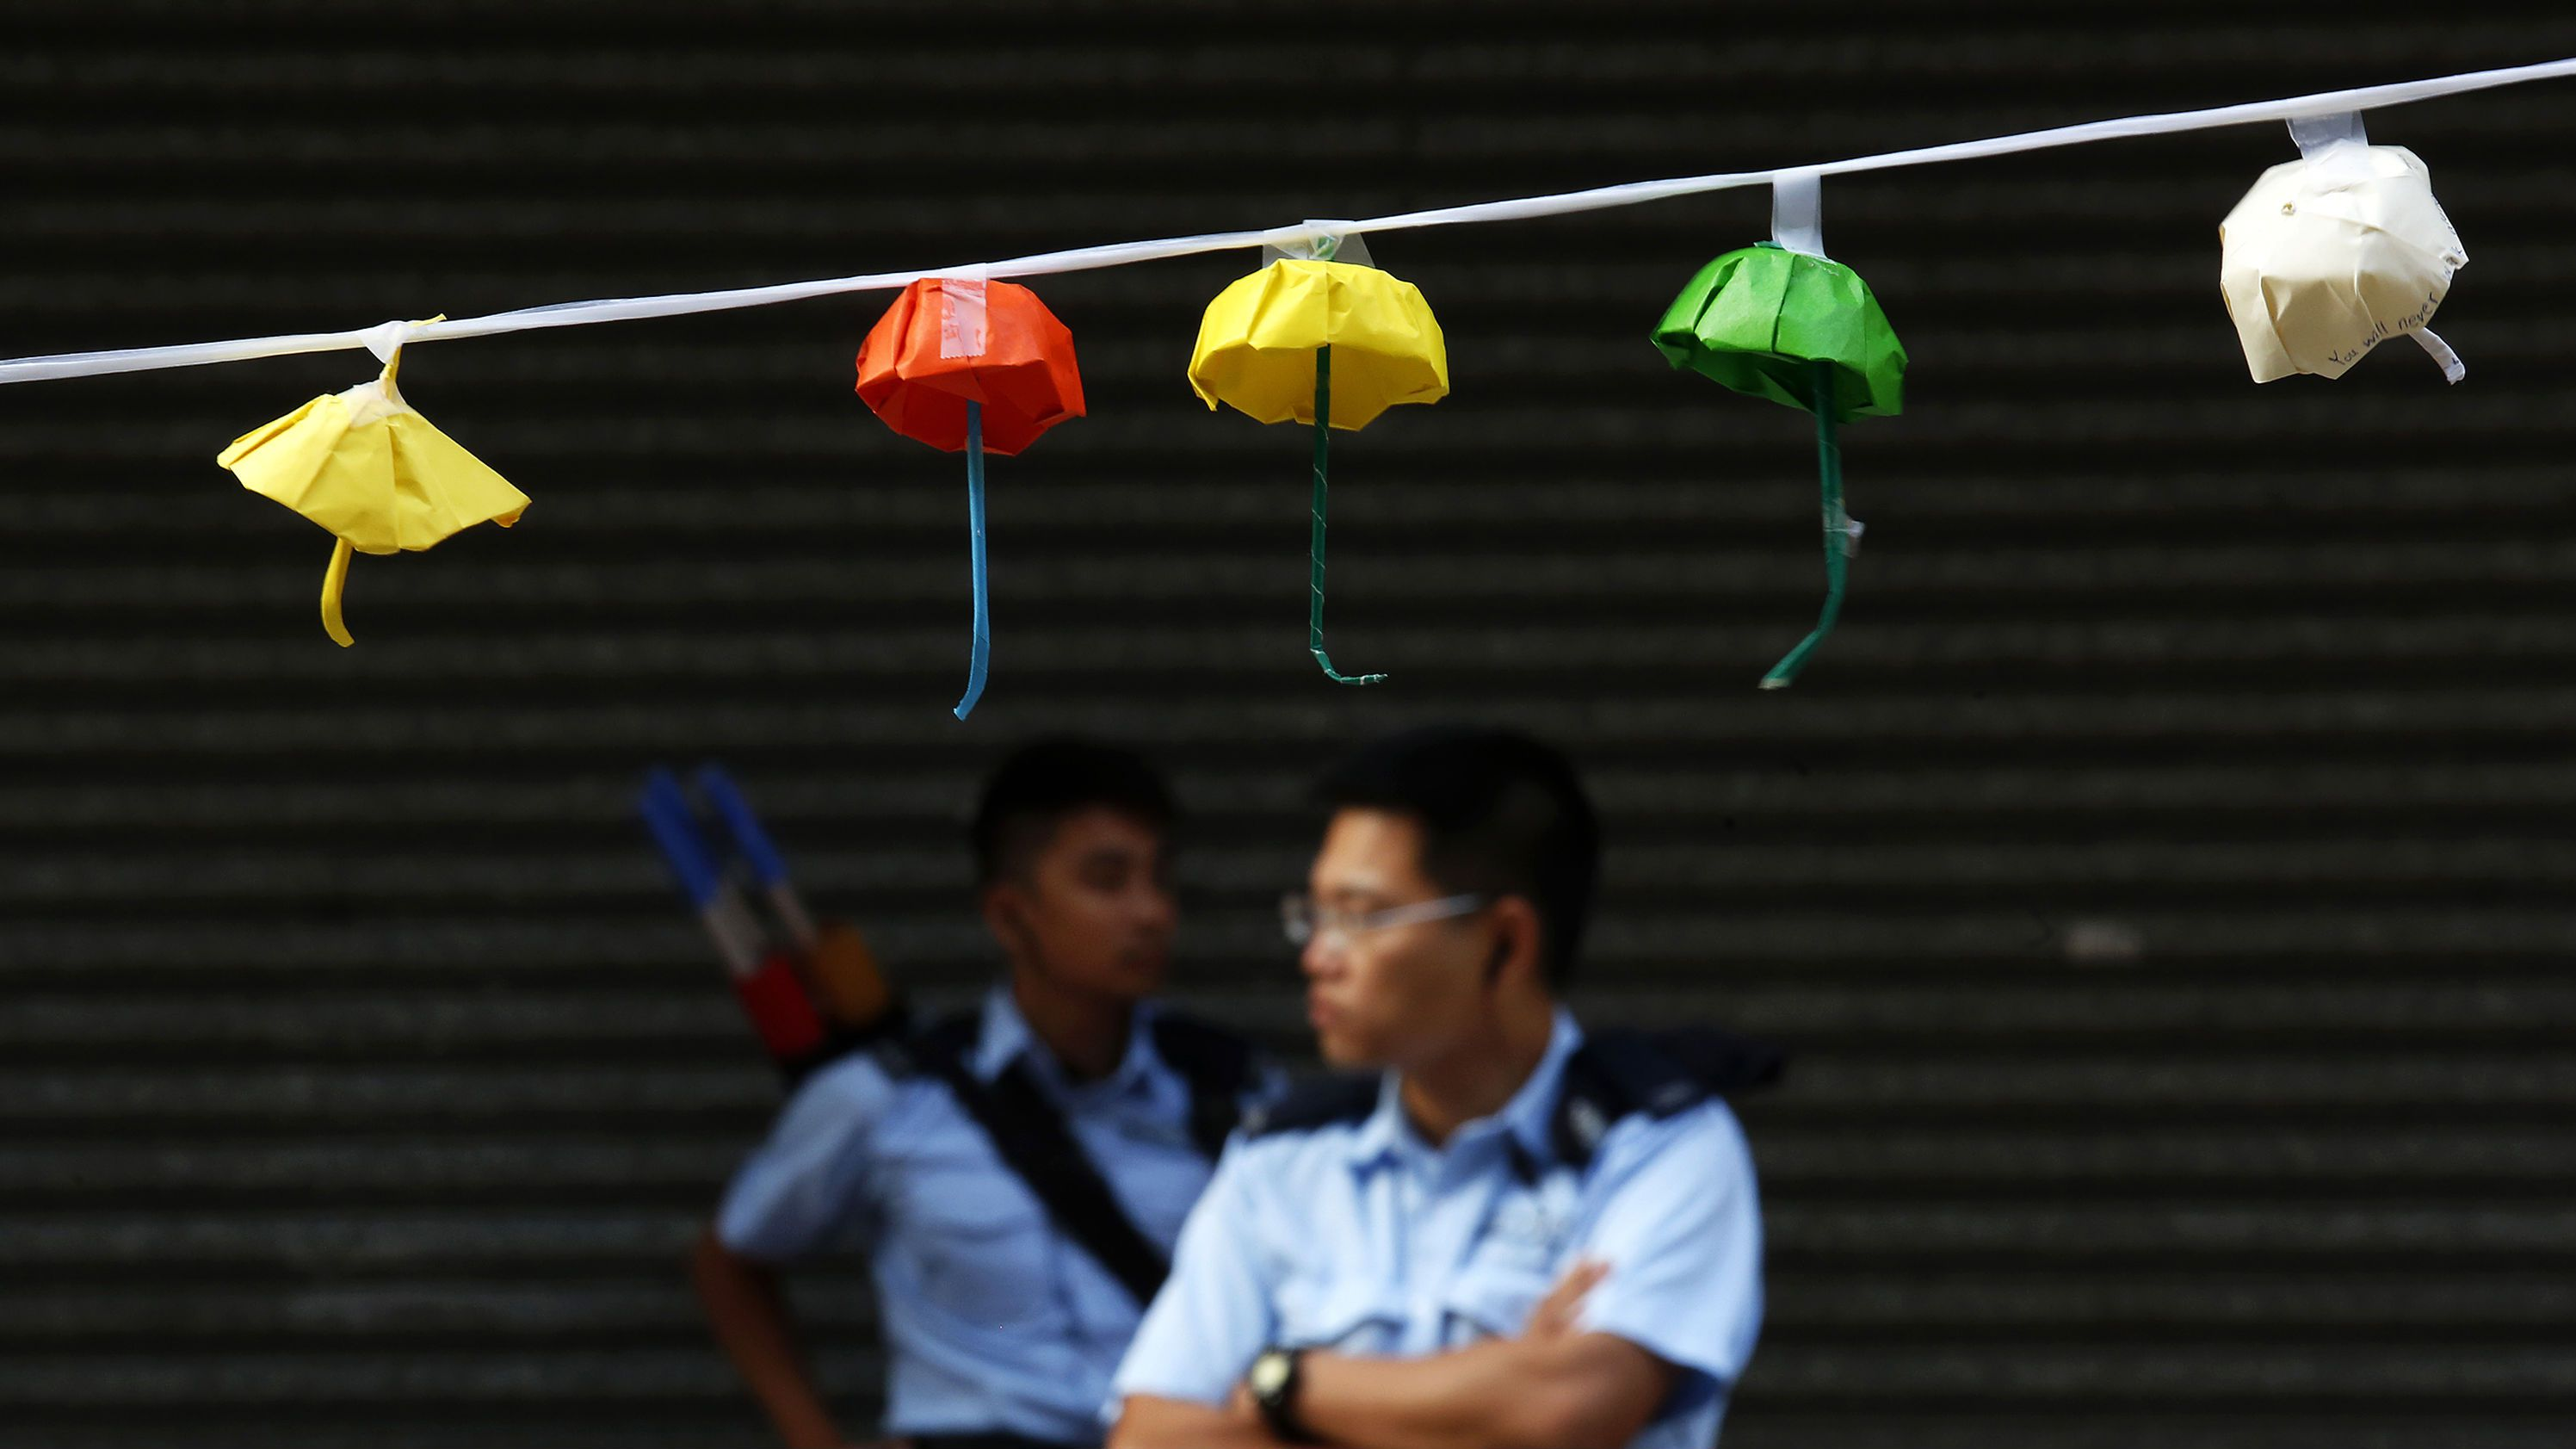 Police at Occupy Central